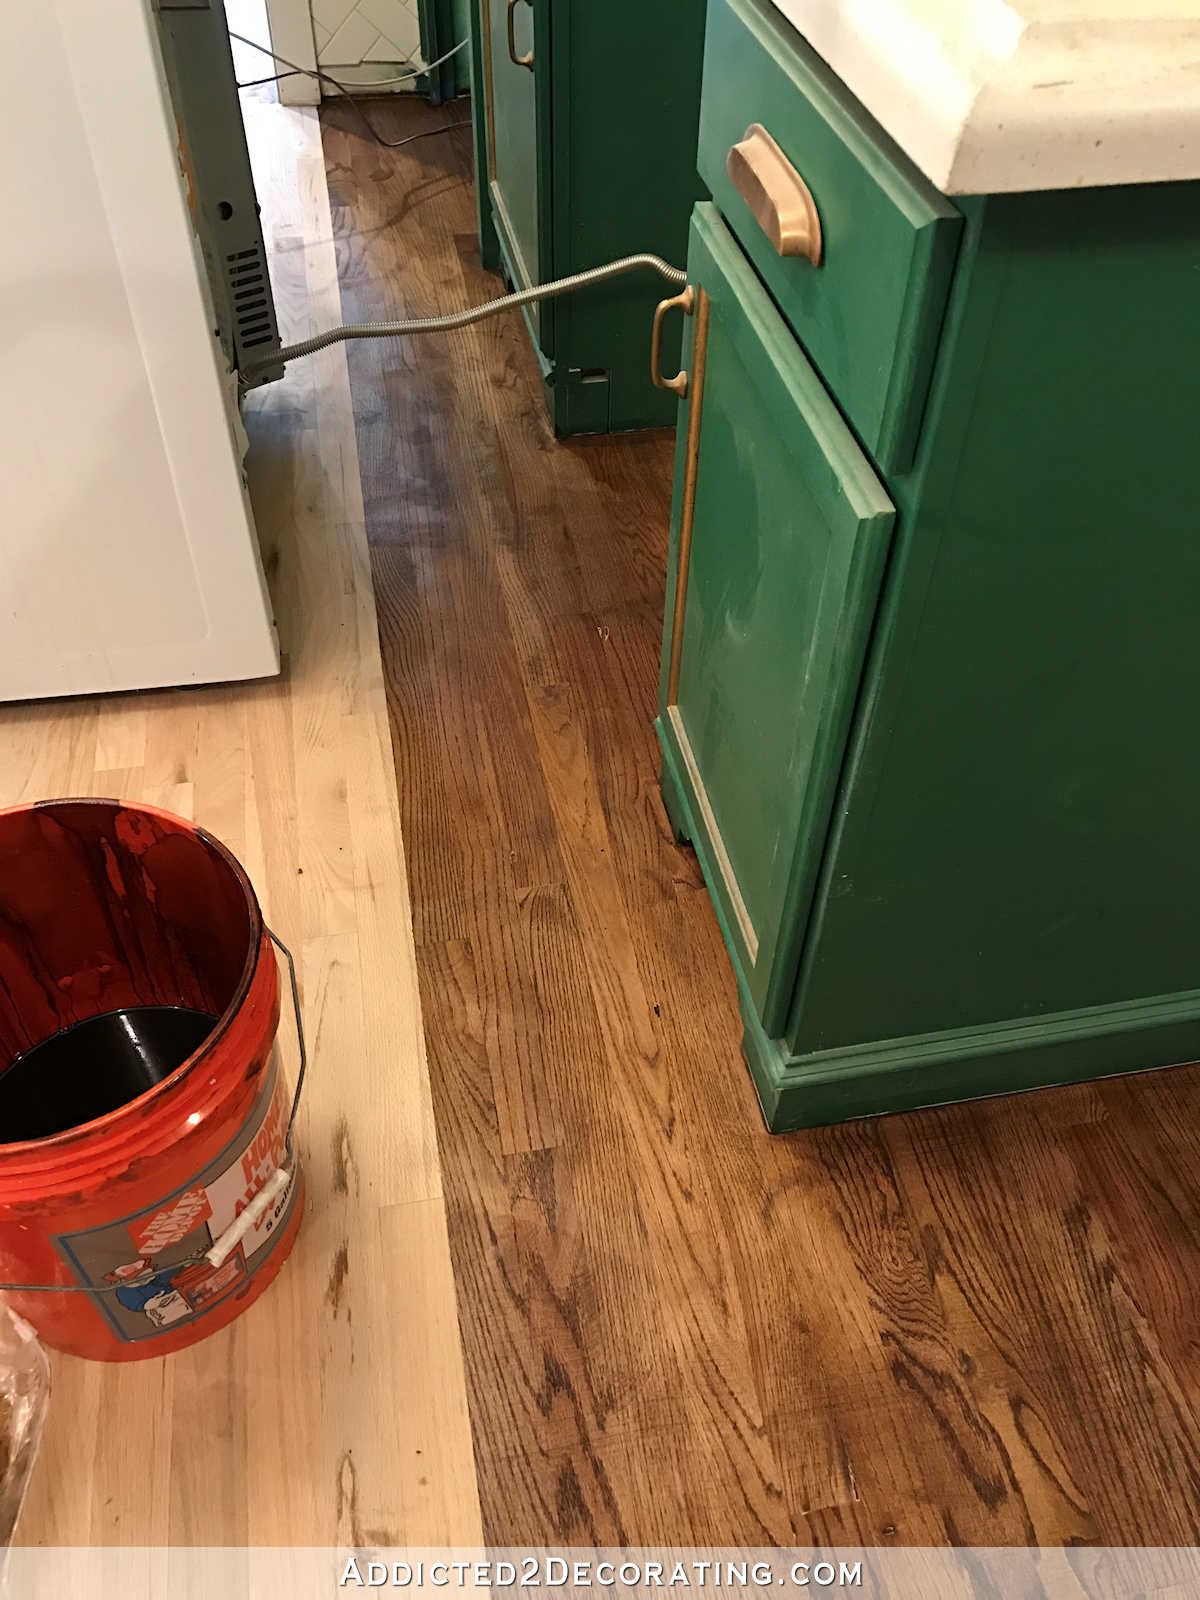 Popular Hardwood Flooring 2016 Of Adventures In Staining My Red Oak Hardwood Floors Products Process Pertaining to Staining Red Oak Hardwood Floors 10 Stain On Kitchen Floor Behind Stove and Refrigerator